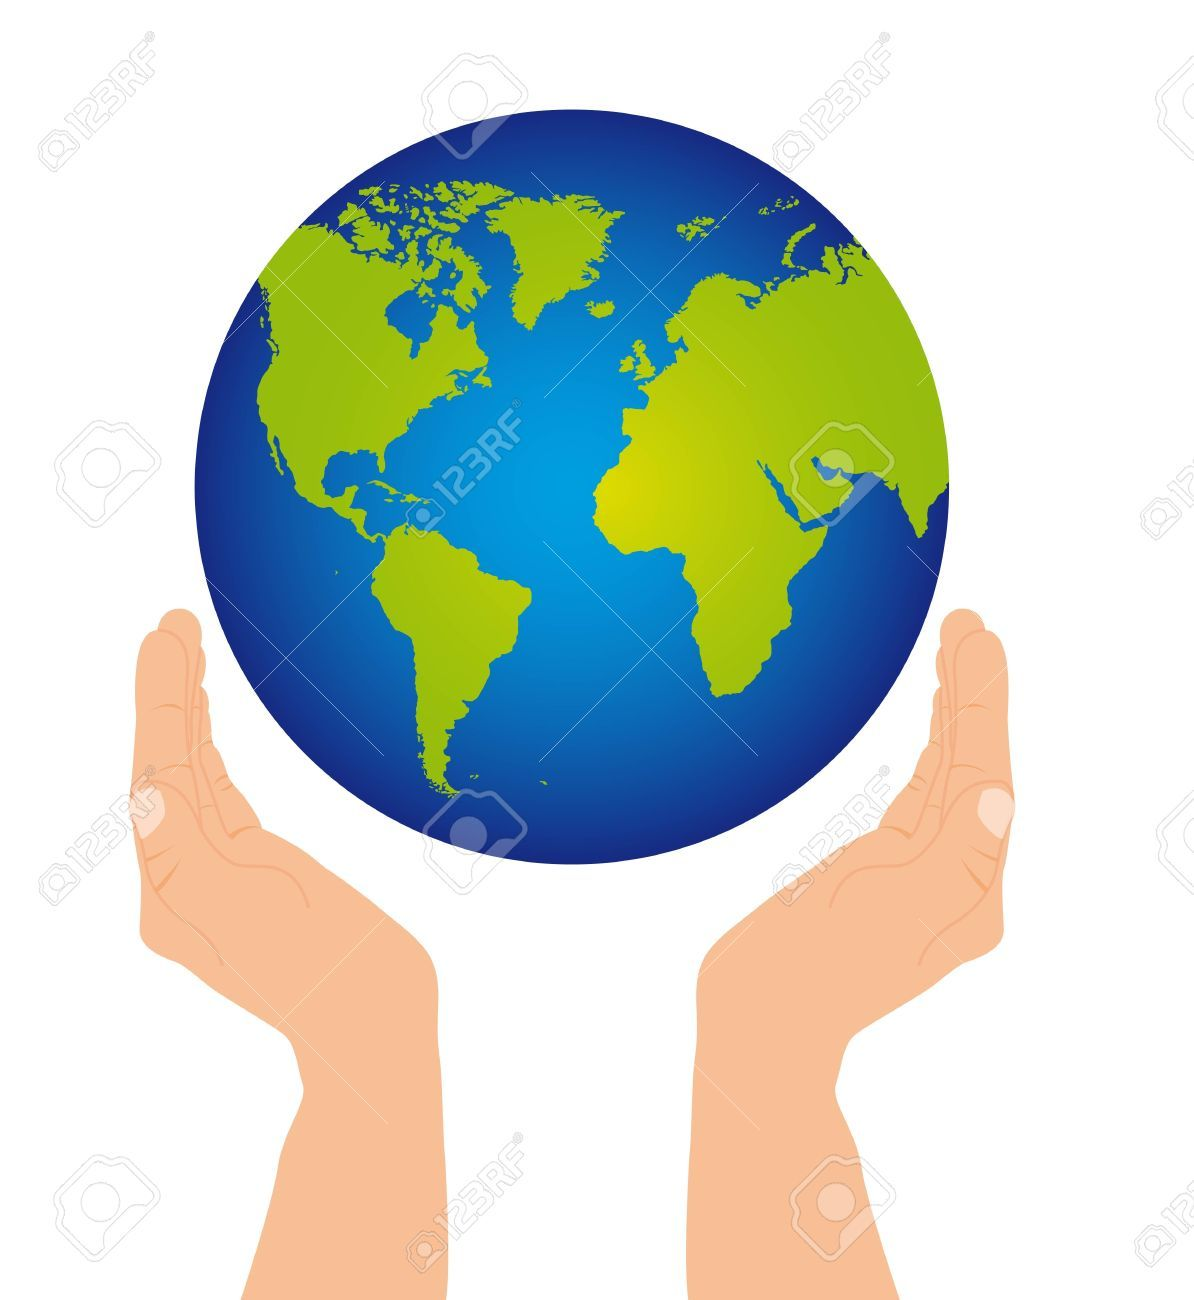 Hands holding globe clipart clip free stock Hands holding globe clipart 8 » Clipart Portal clip free stock